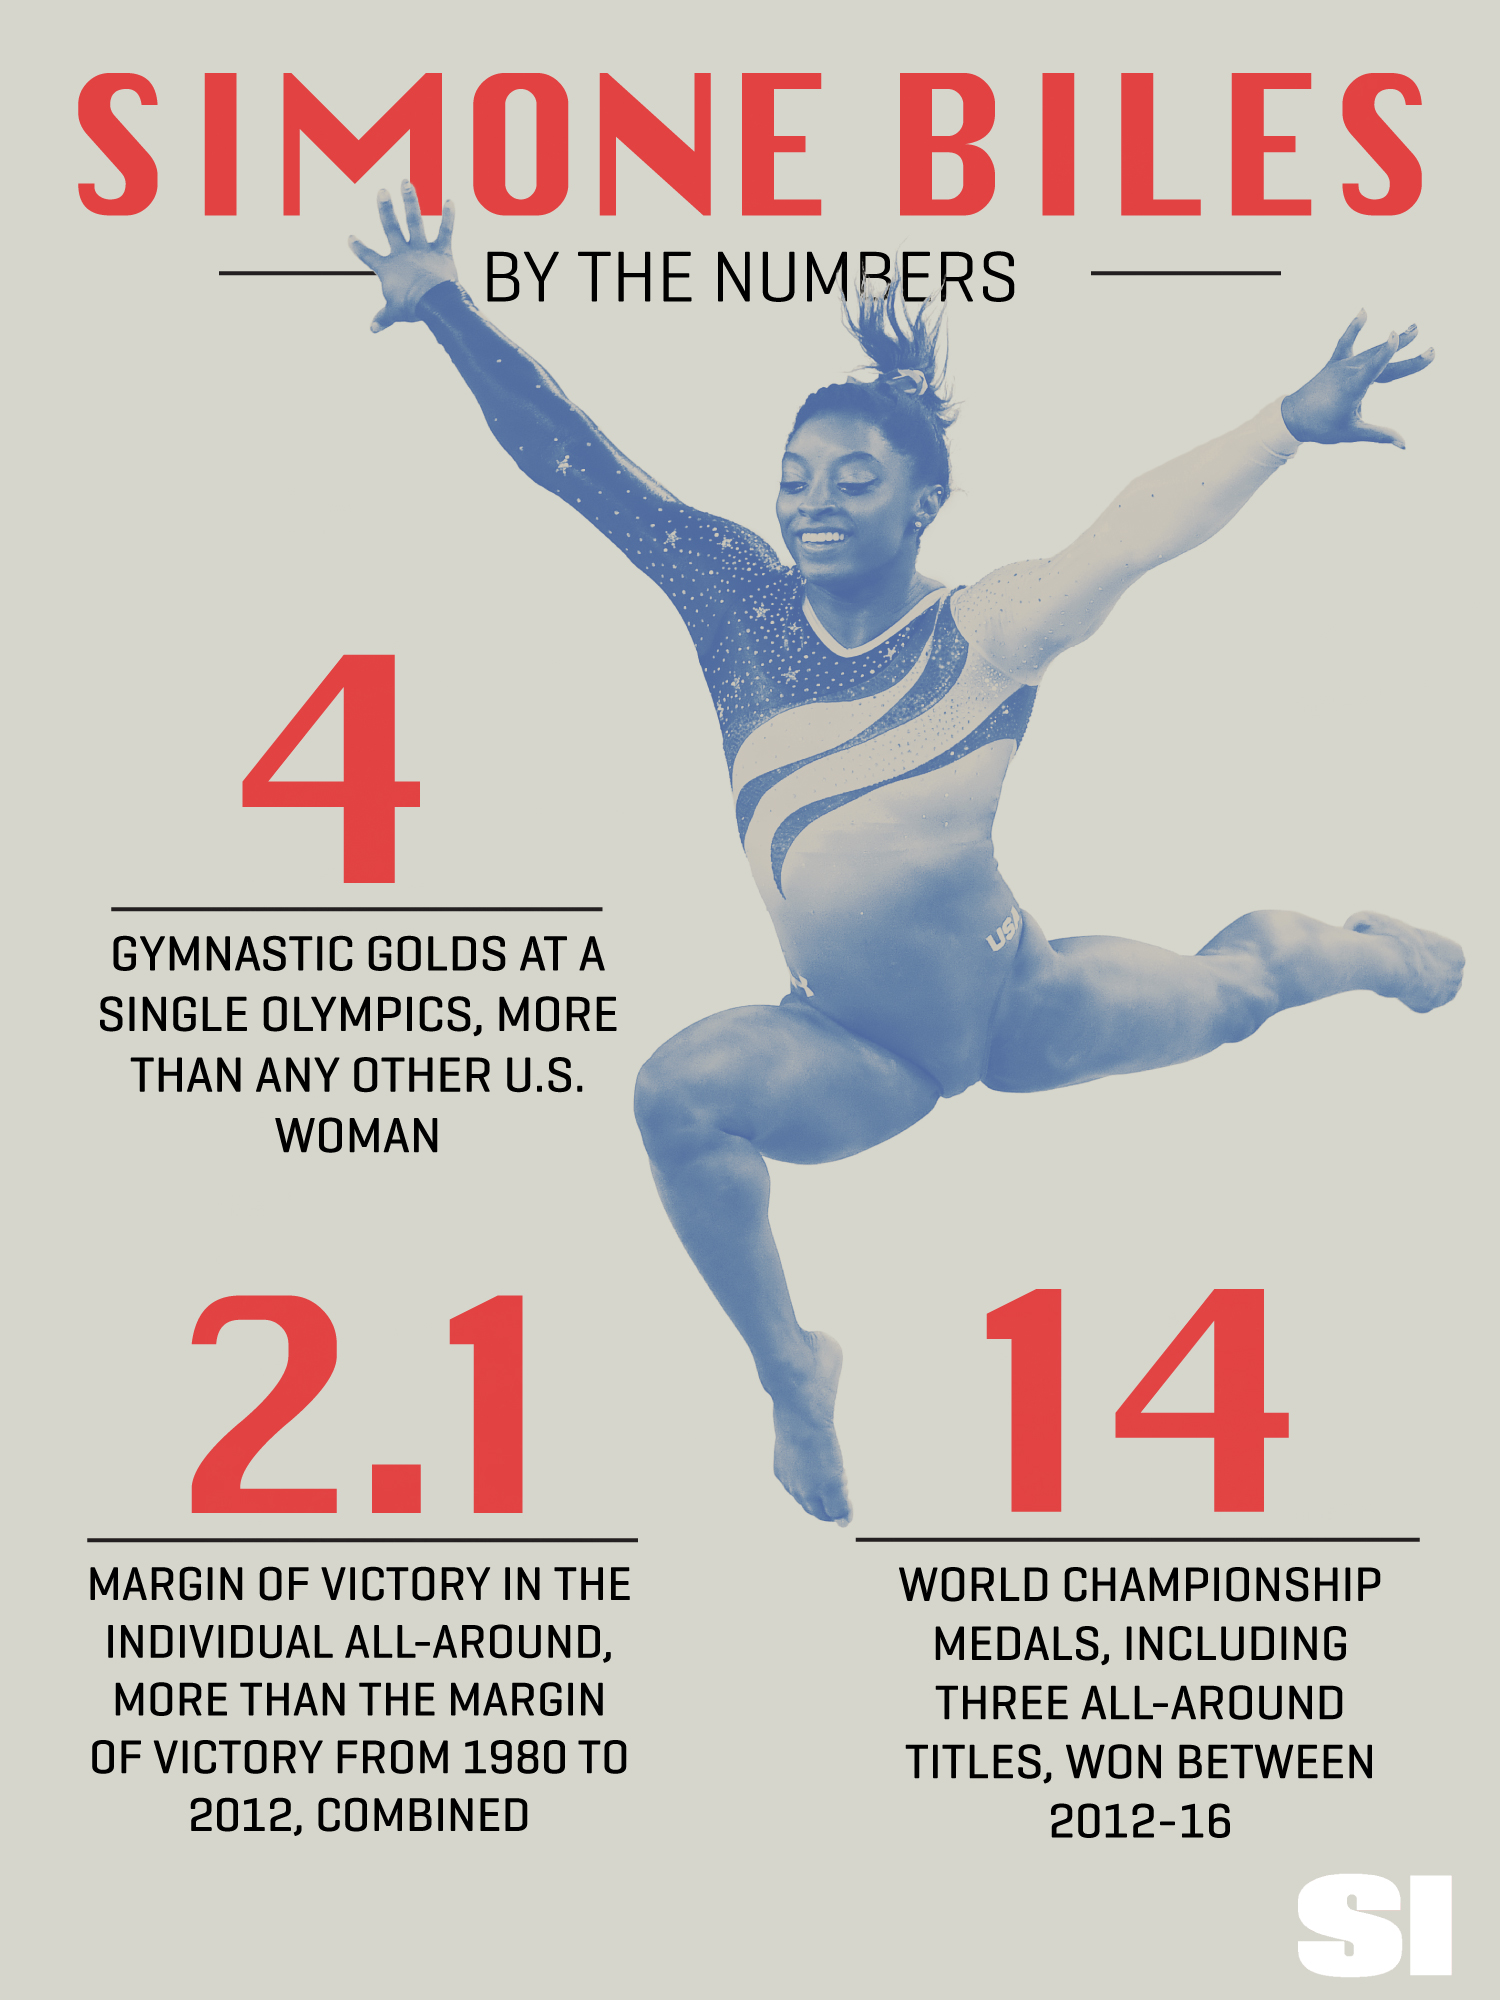 Simone Biles: Olympic accomplishments and much more